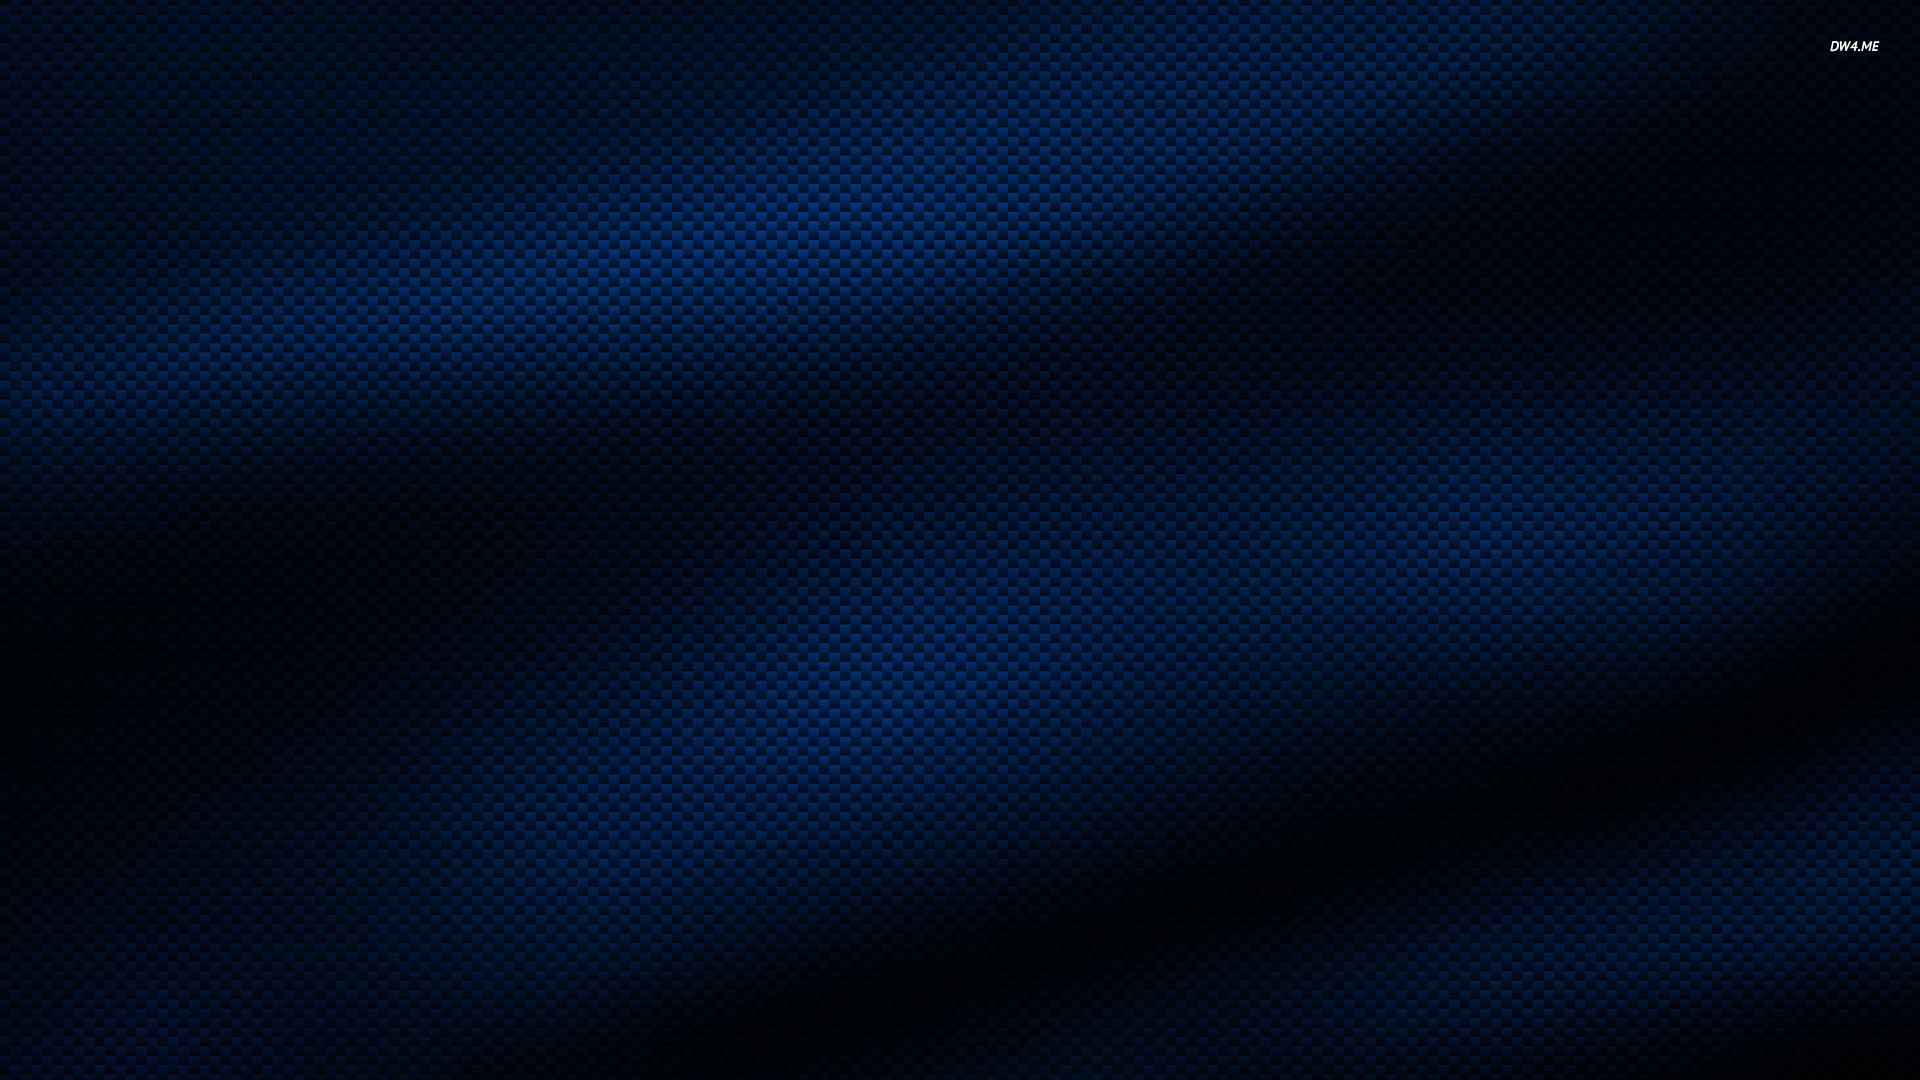 Carbon fiber fabric wallpaper   679777 1920x1080